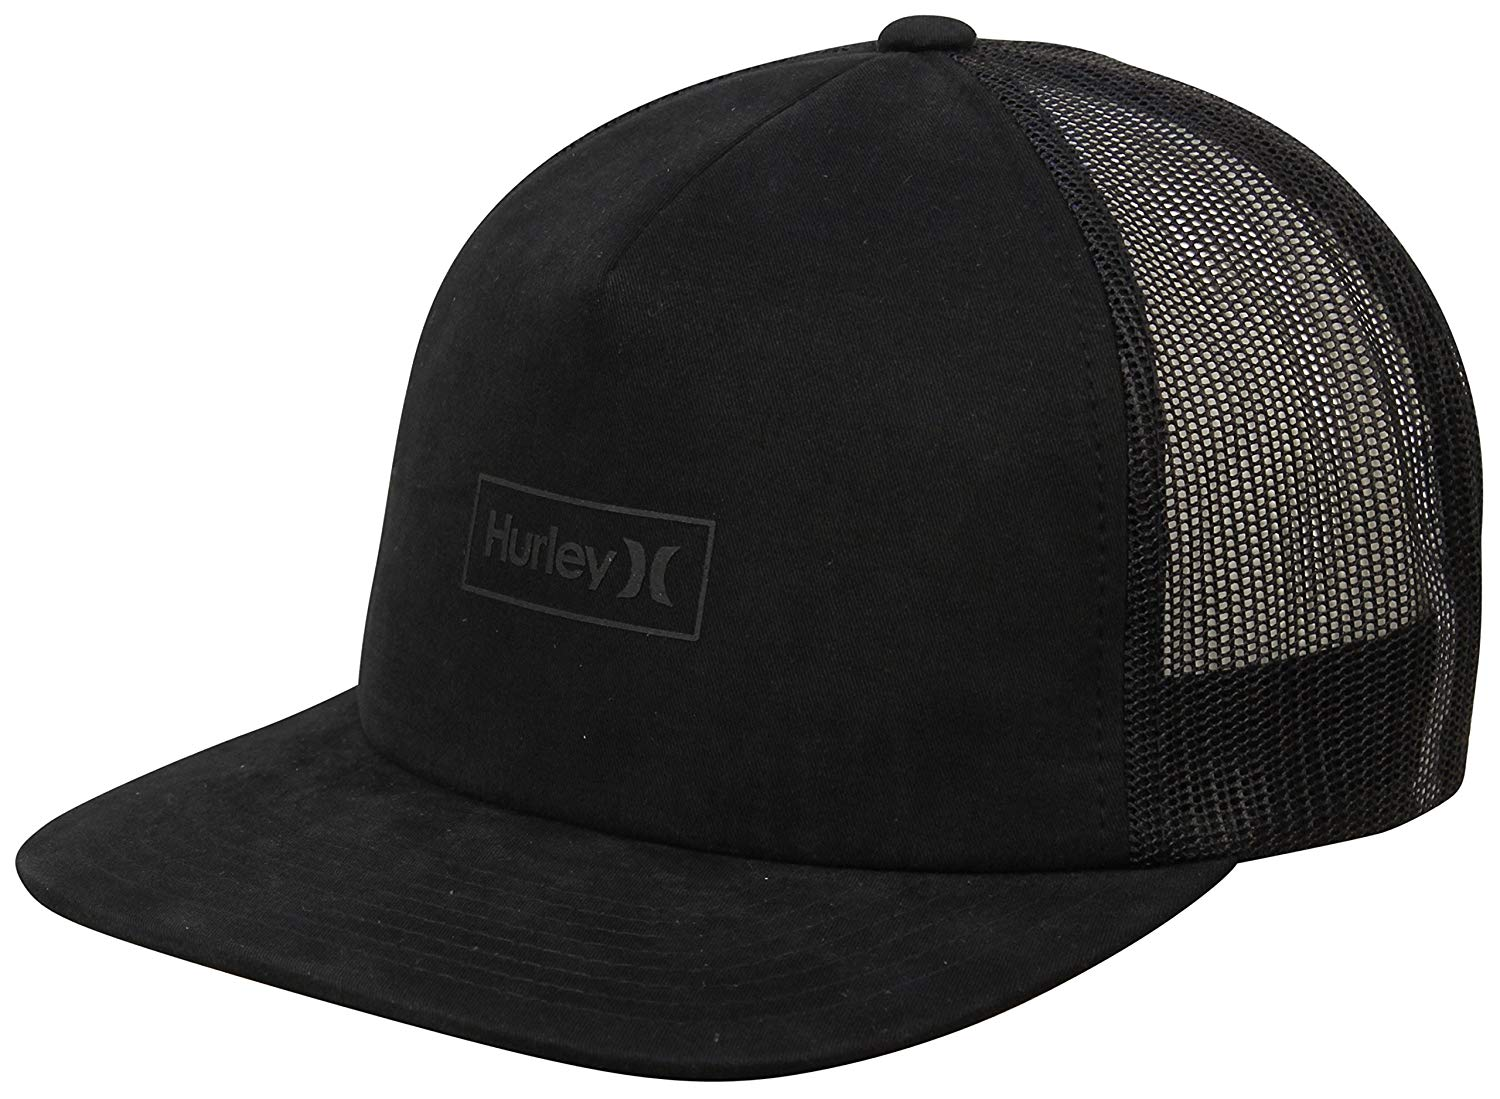 the latest 65c73 78e6c Get Quotations · Hurley Locked Hat